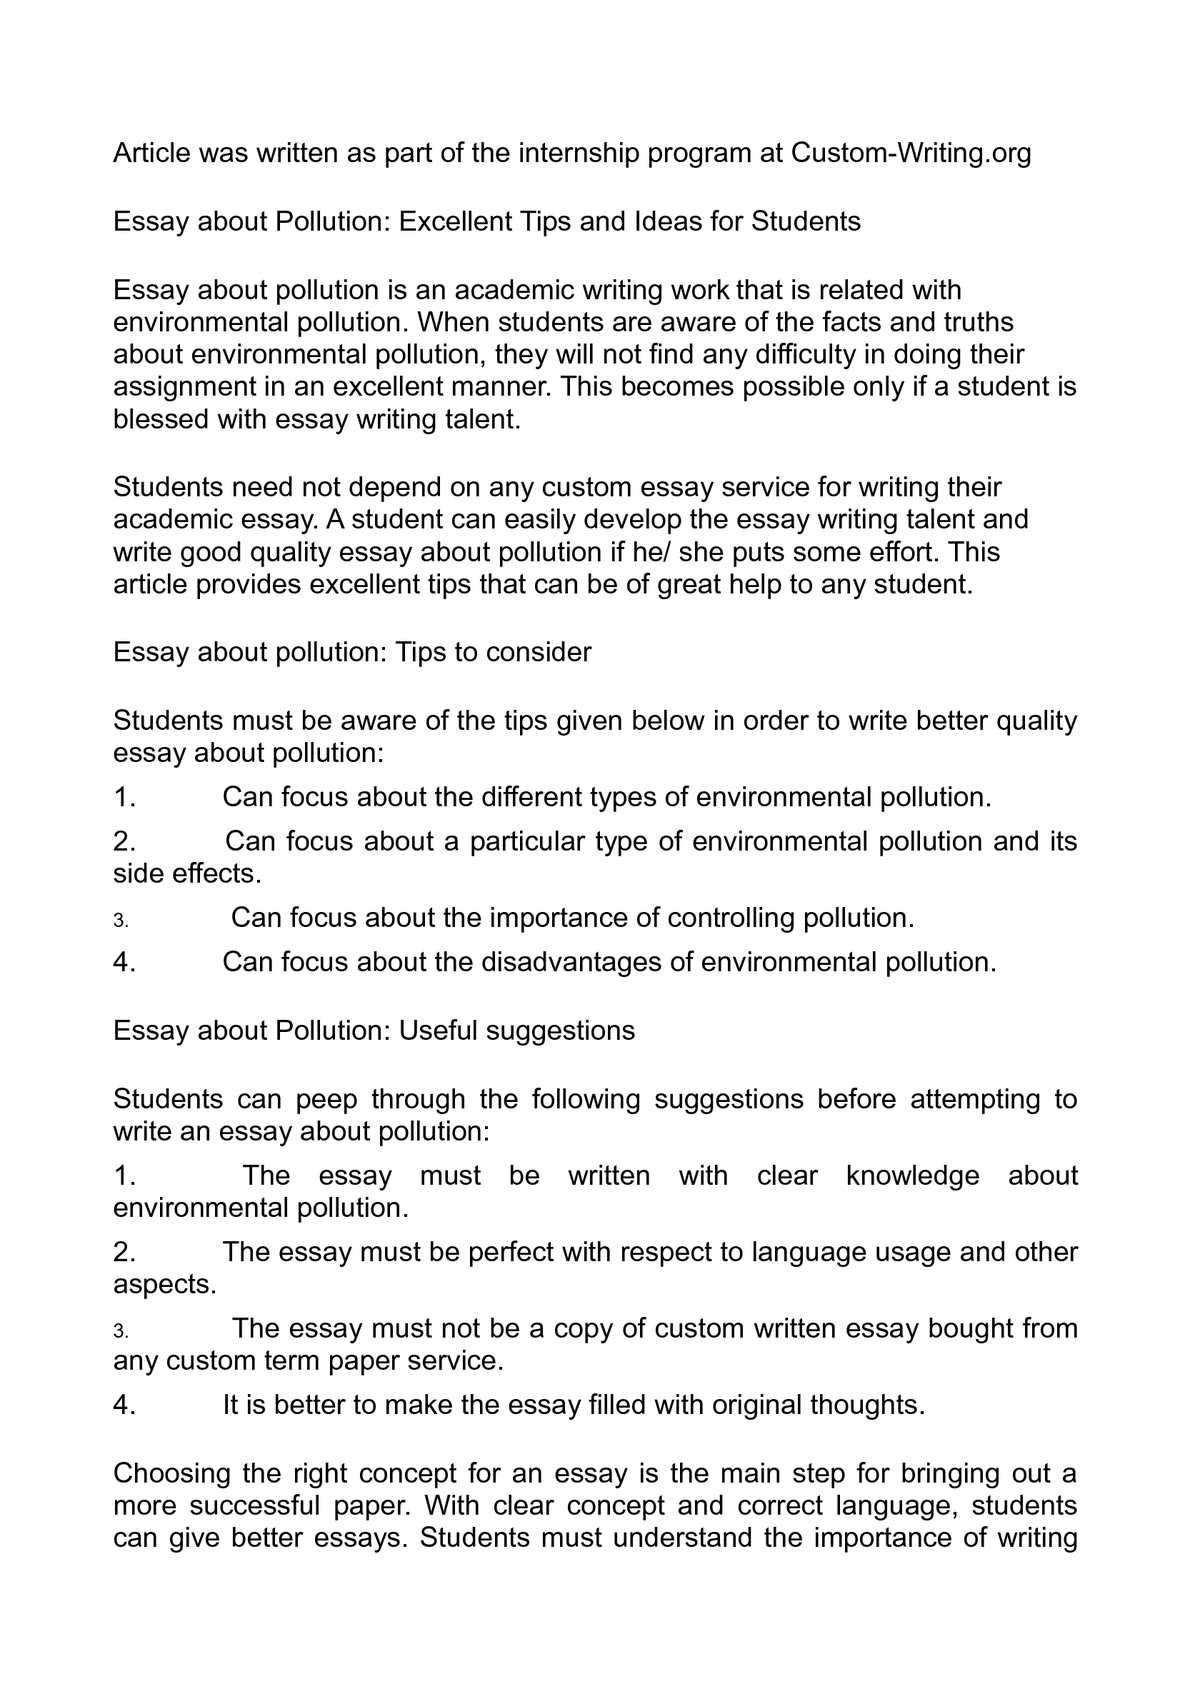 environmental pollution essay in english 150 words